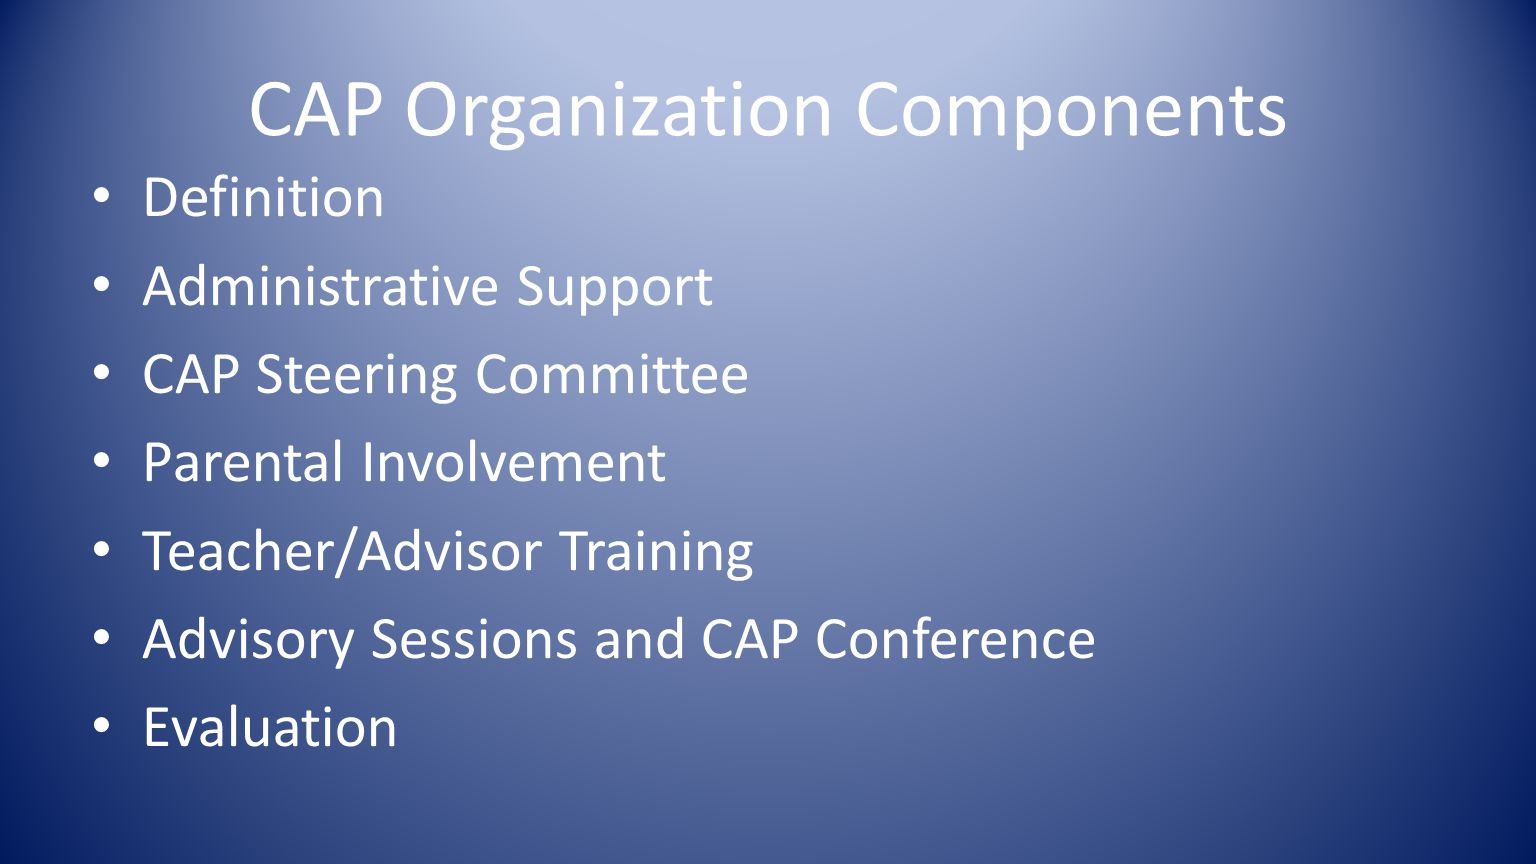 CAP Organization Components Definition Administrative Support CAP Steering Committee Parental Involvement Teacher/Advisor Training Advisory Sessions and CAP Conference Evaluation